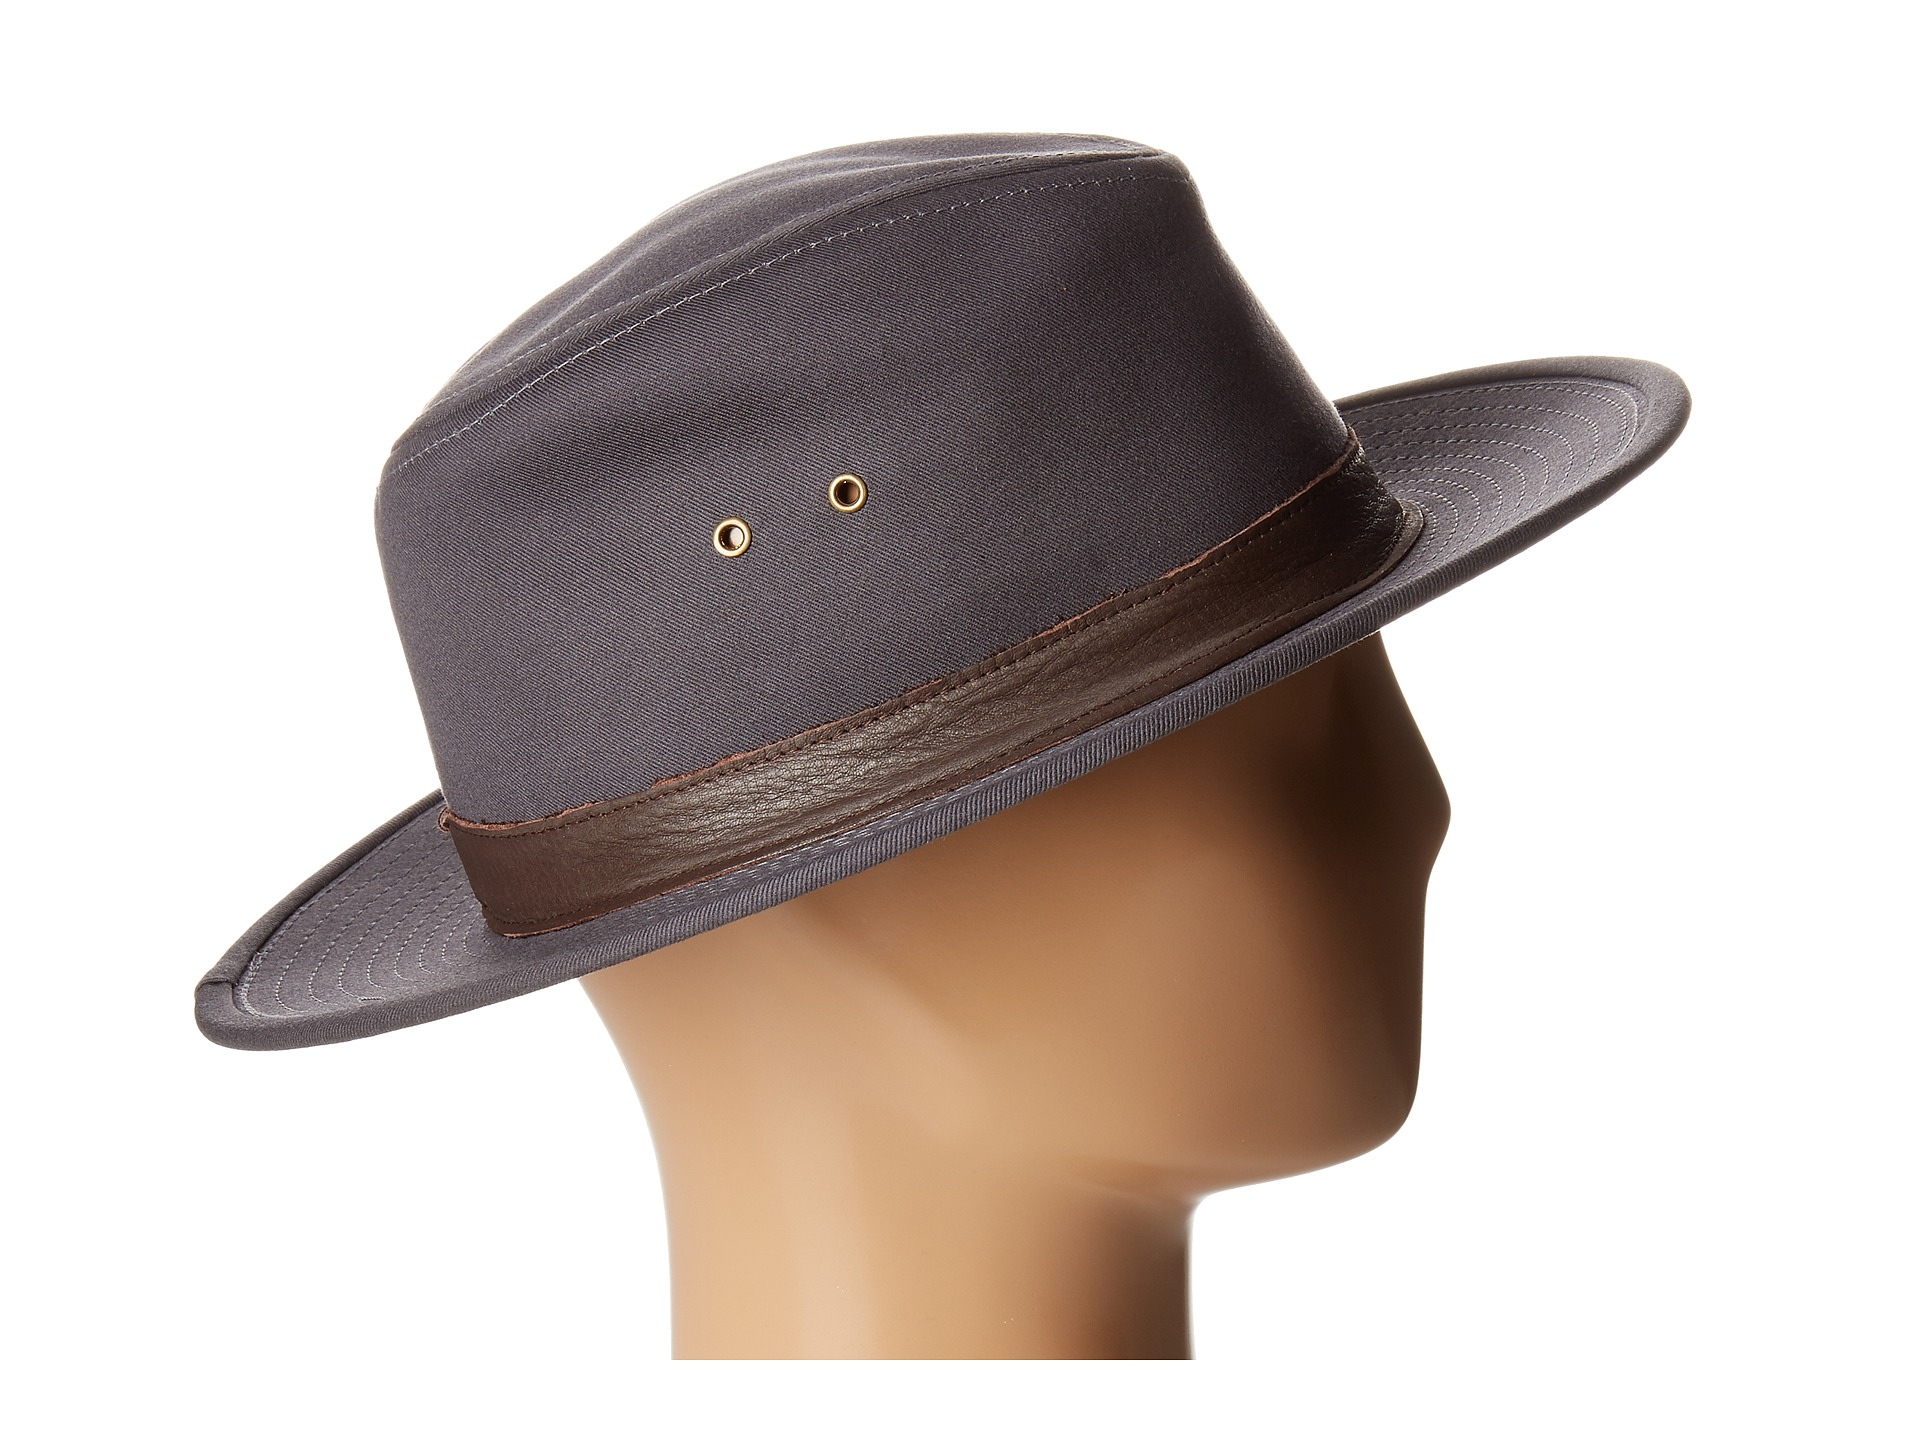 Gray fedora hat for women